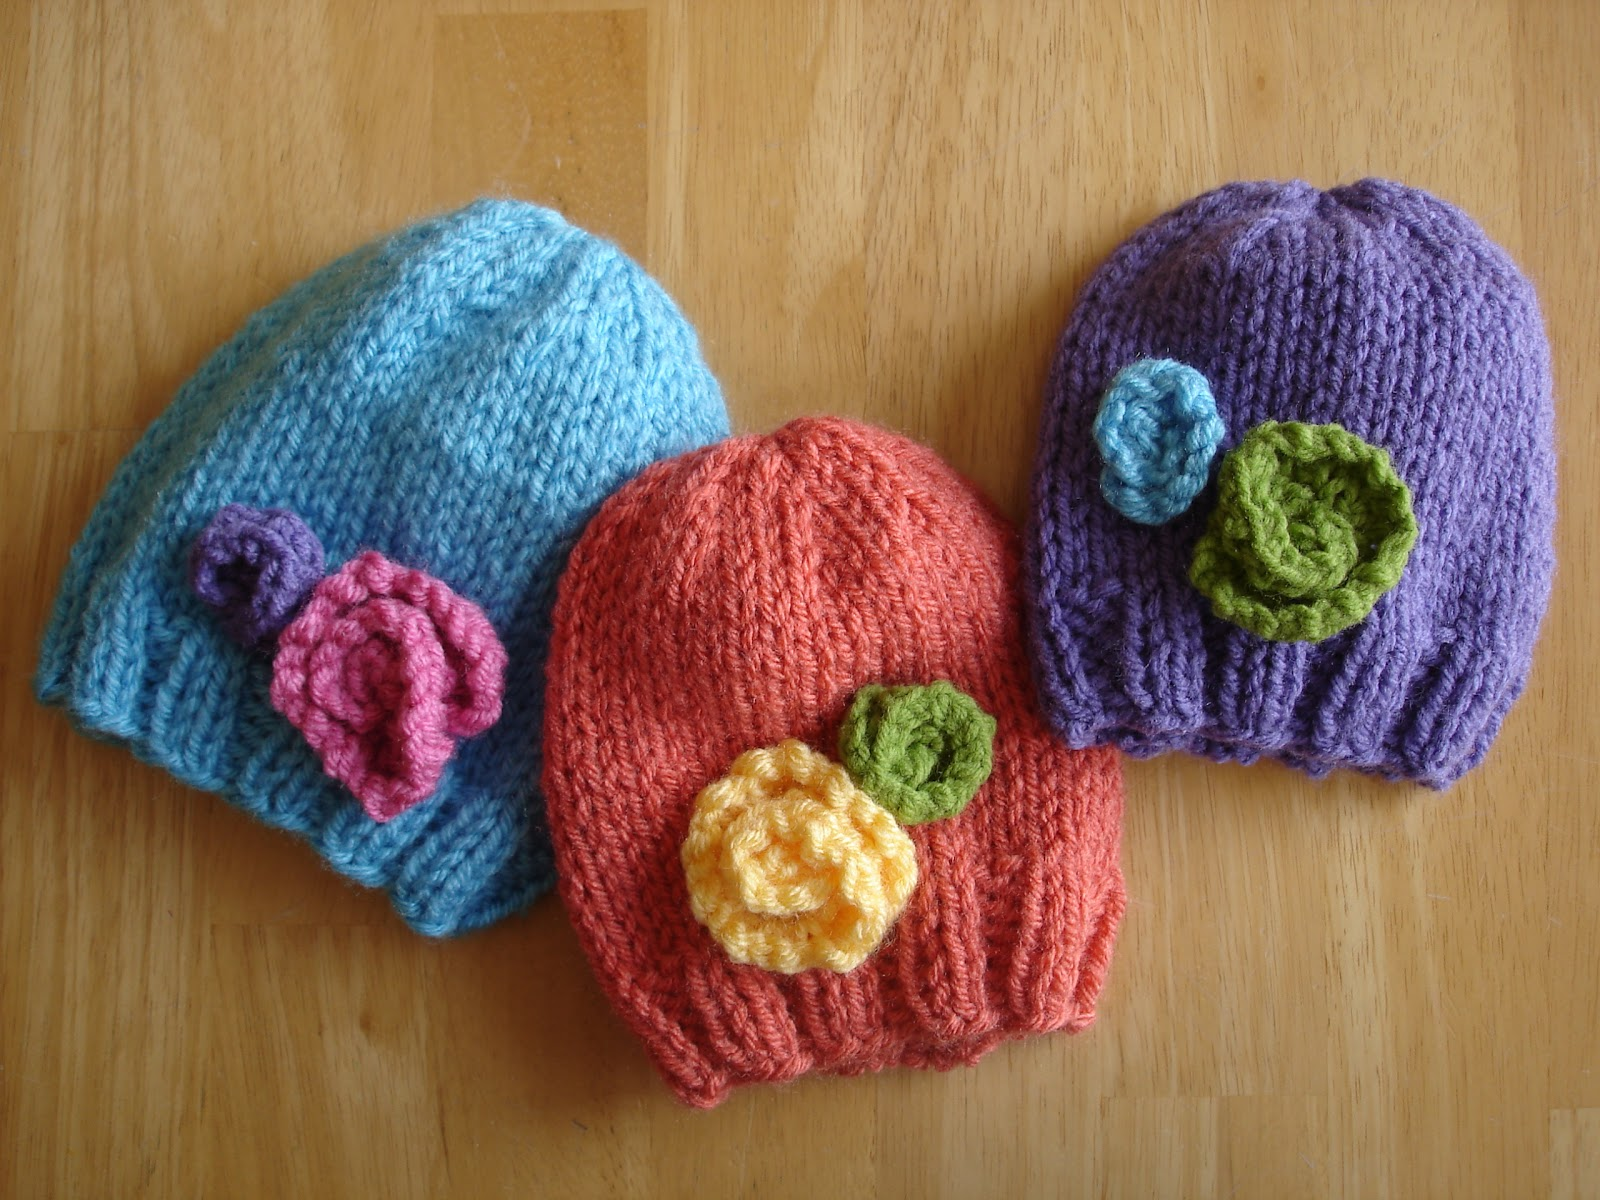 Knitted Baby Beanies Free Patterns : Fiber Flux: Free Knitting Pattern! Baby In Bloom Hats